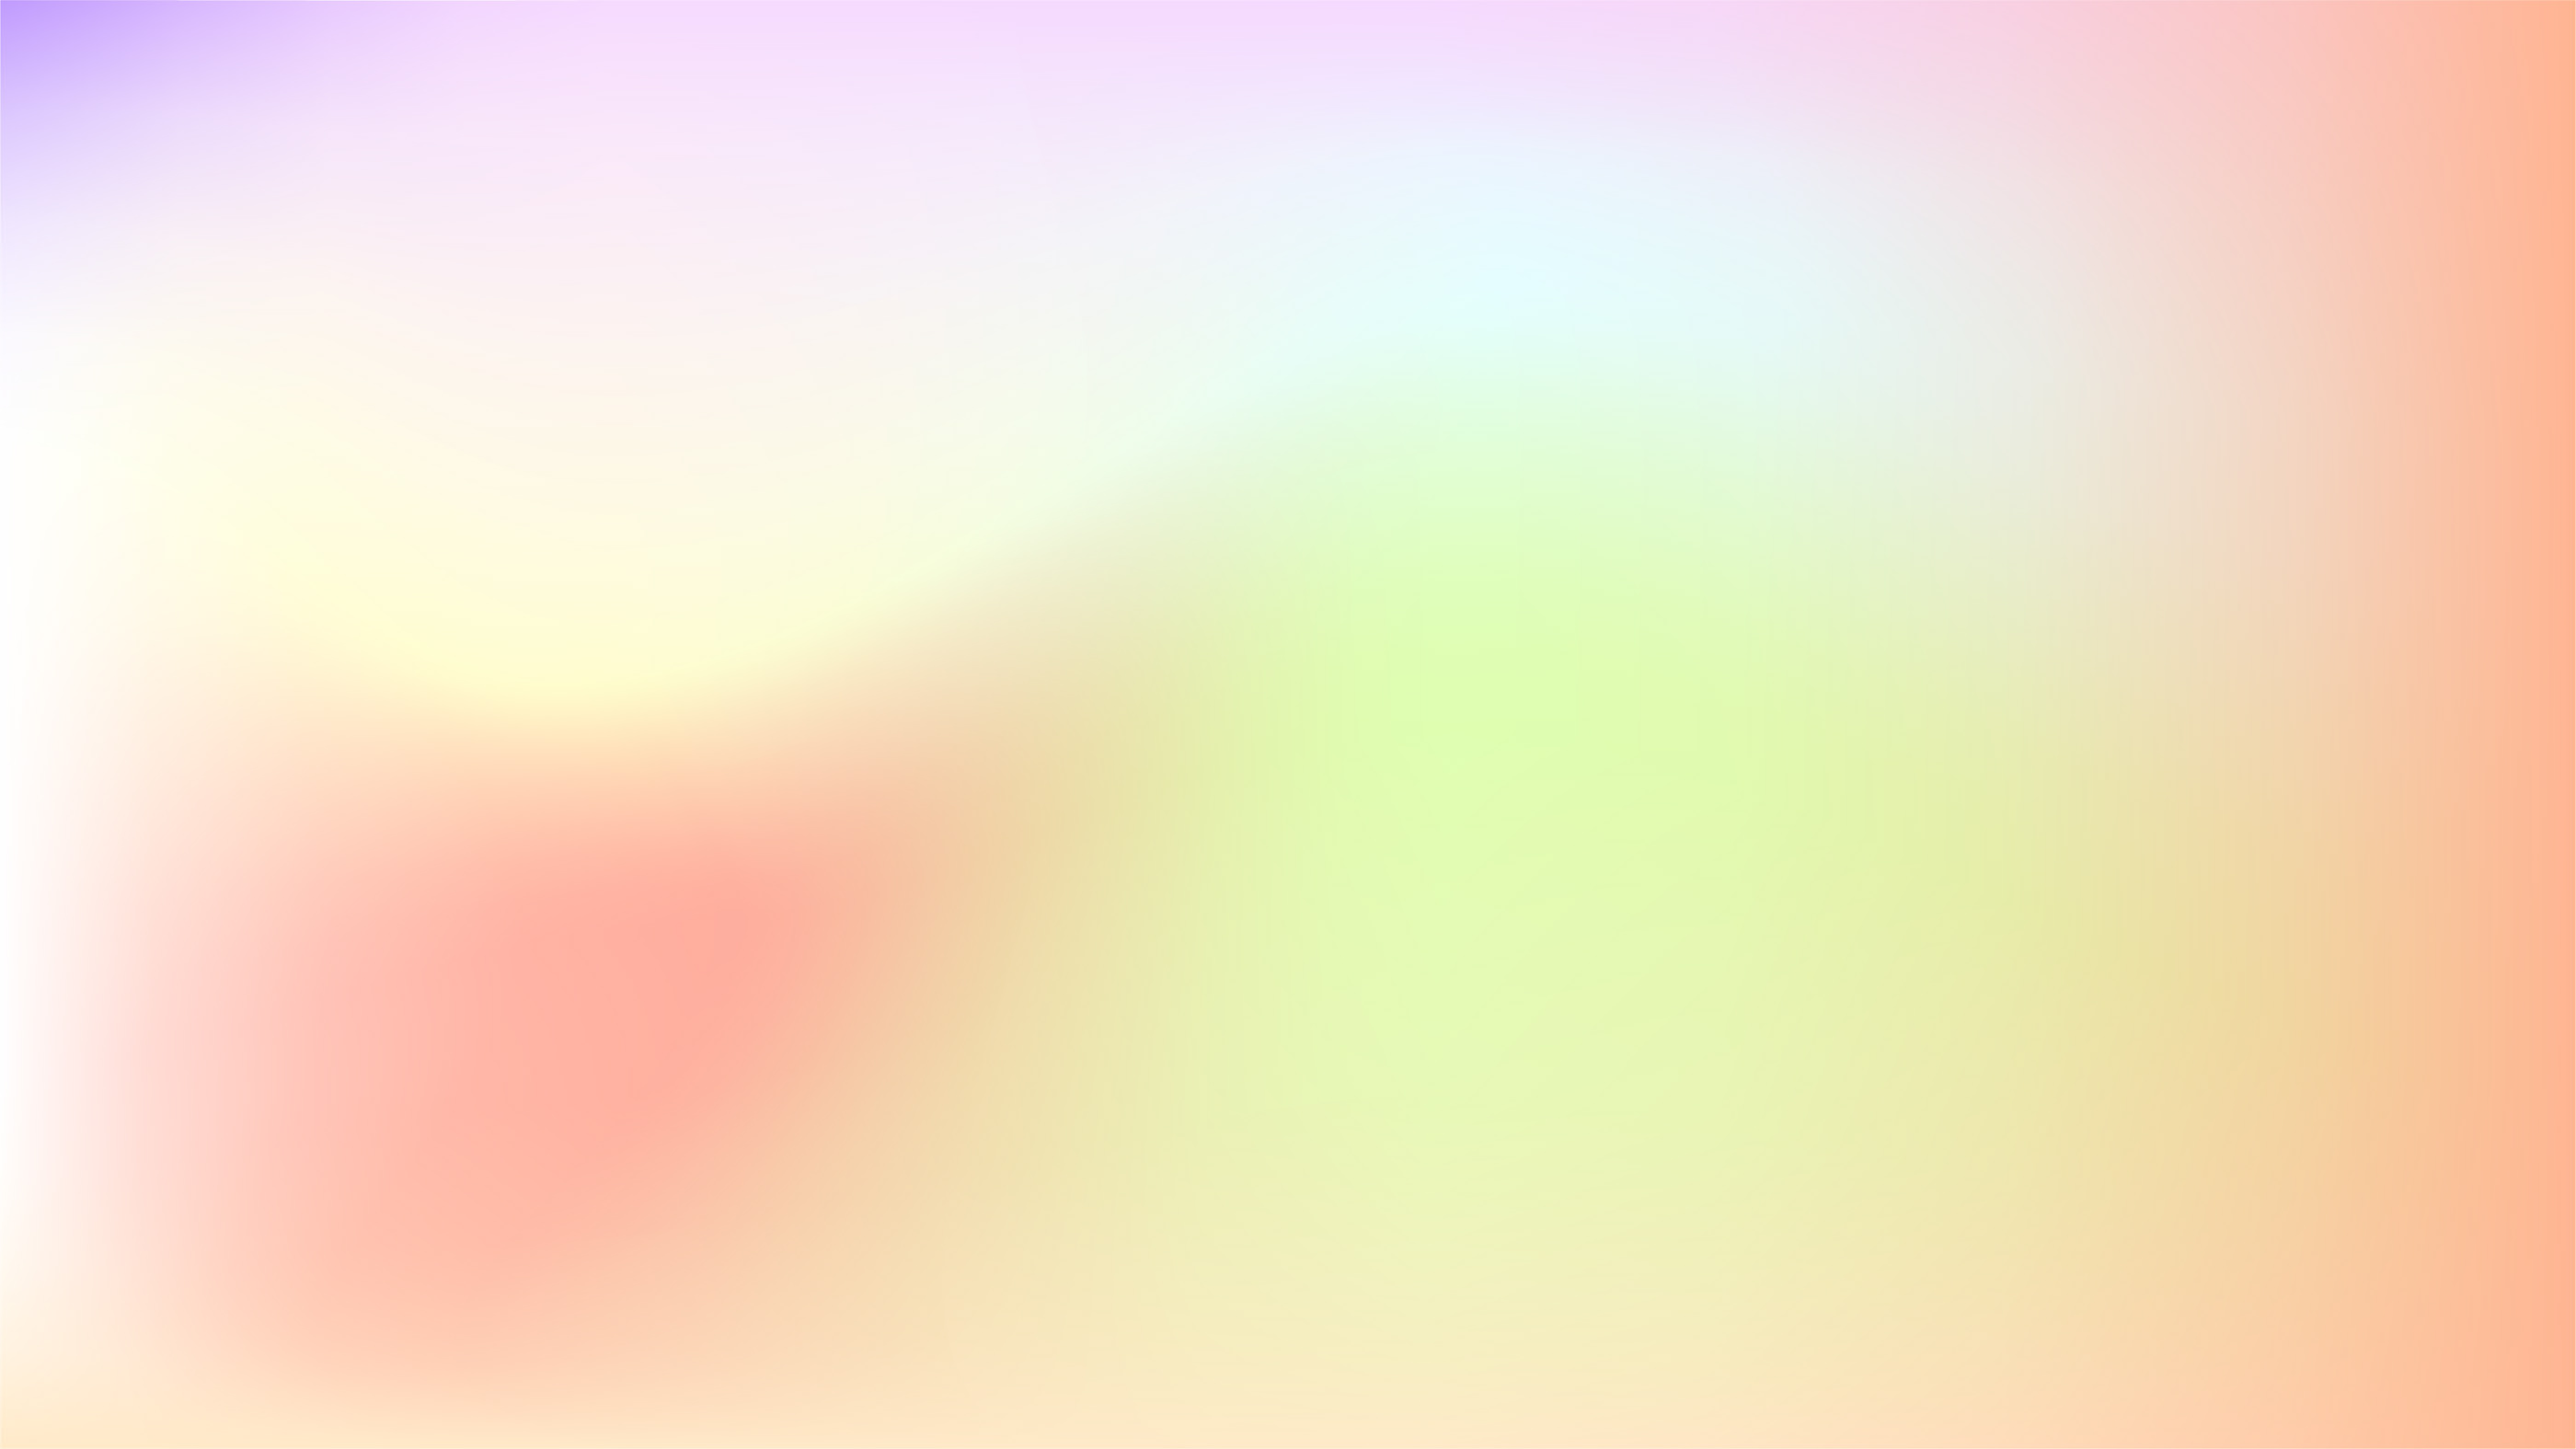 Free Holographic, Multicolor, Unicorn Vector Gradients - 24